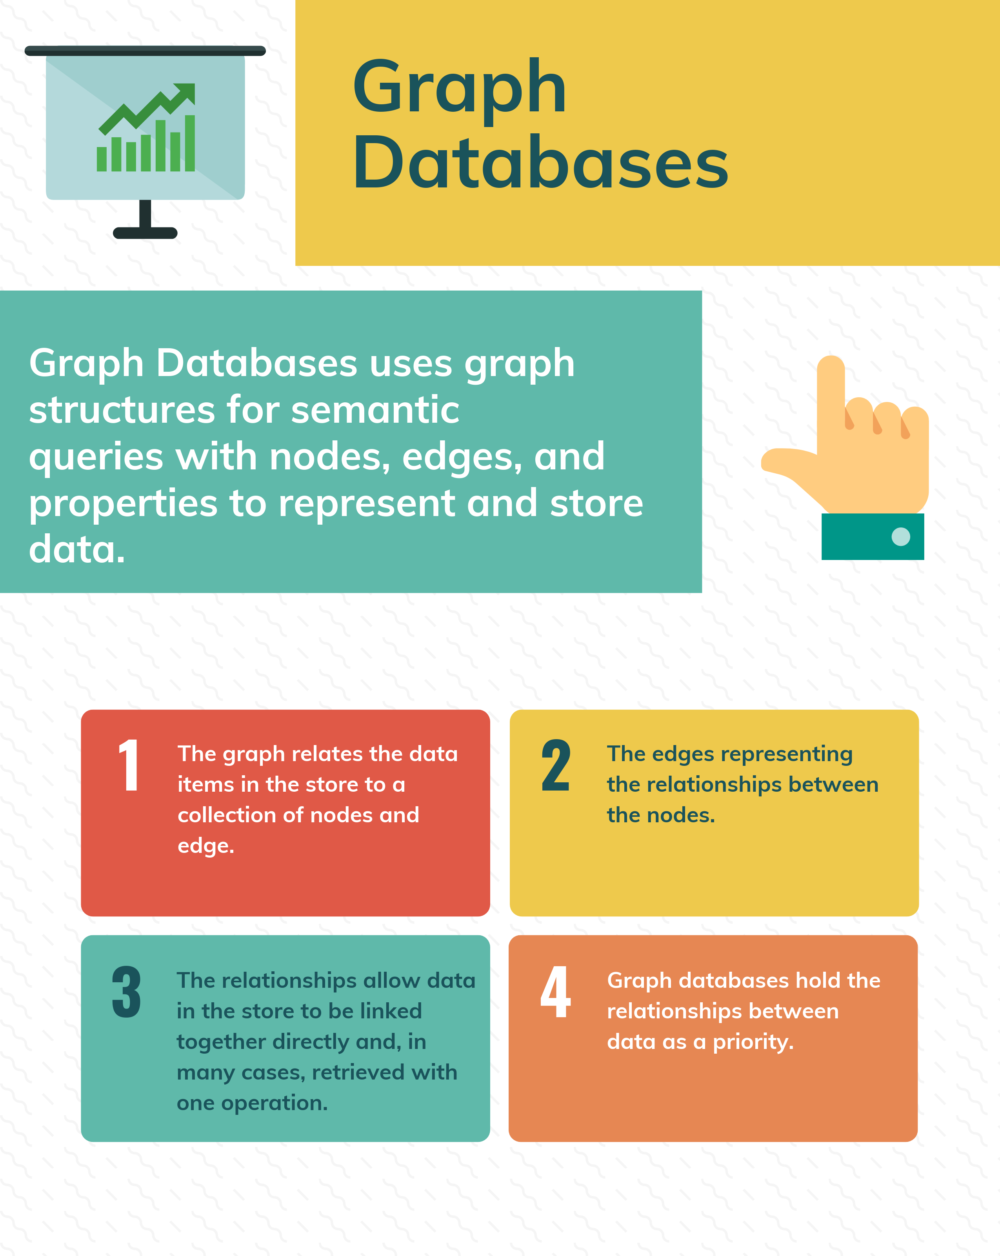 Top 15 Free Graph Databases - Compare Reviews, Features